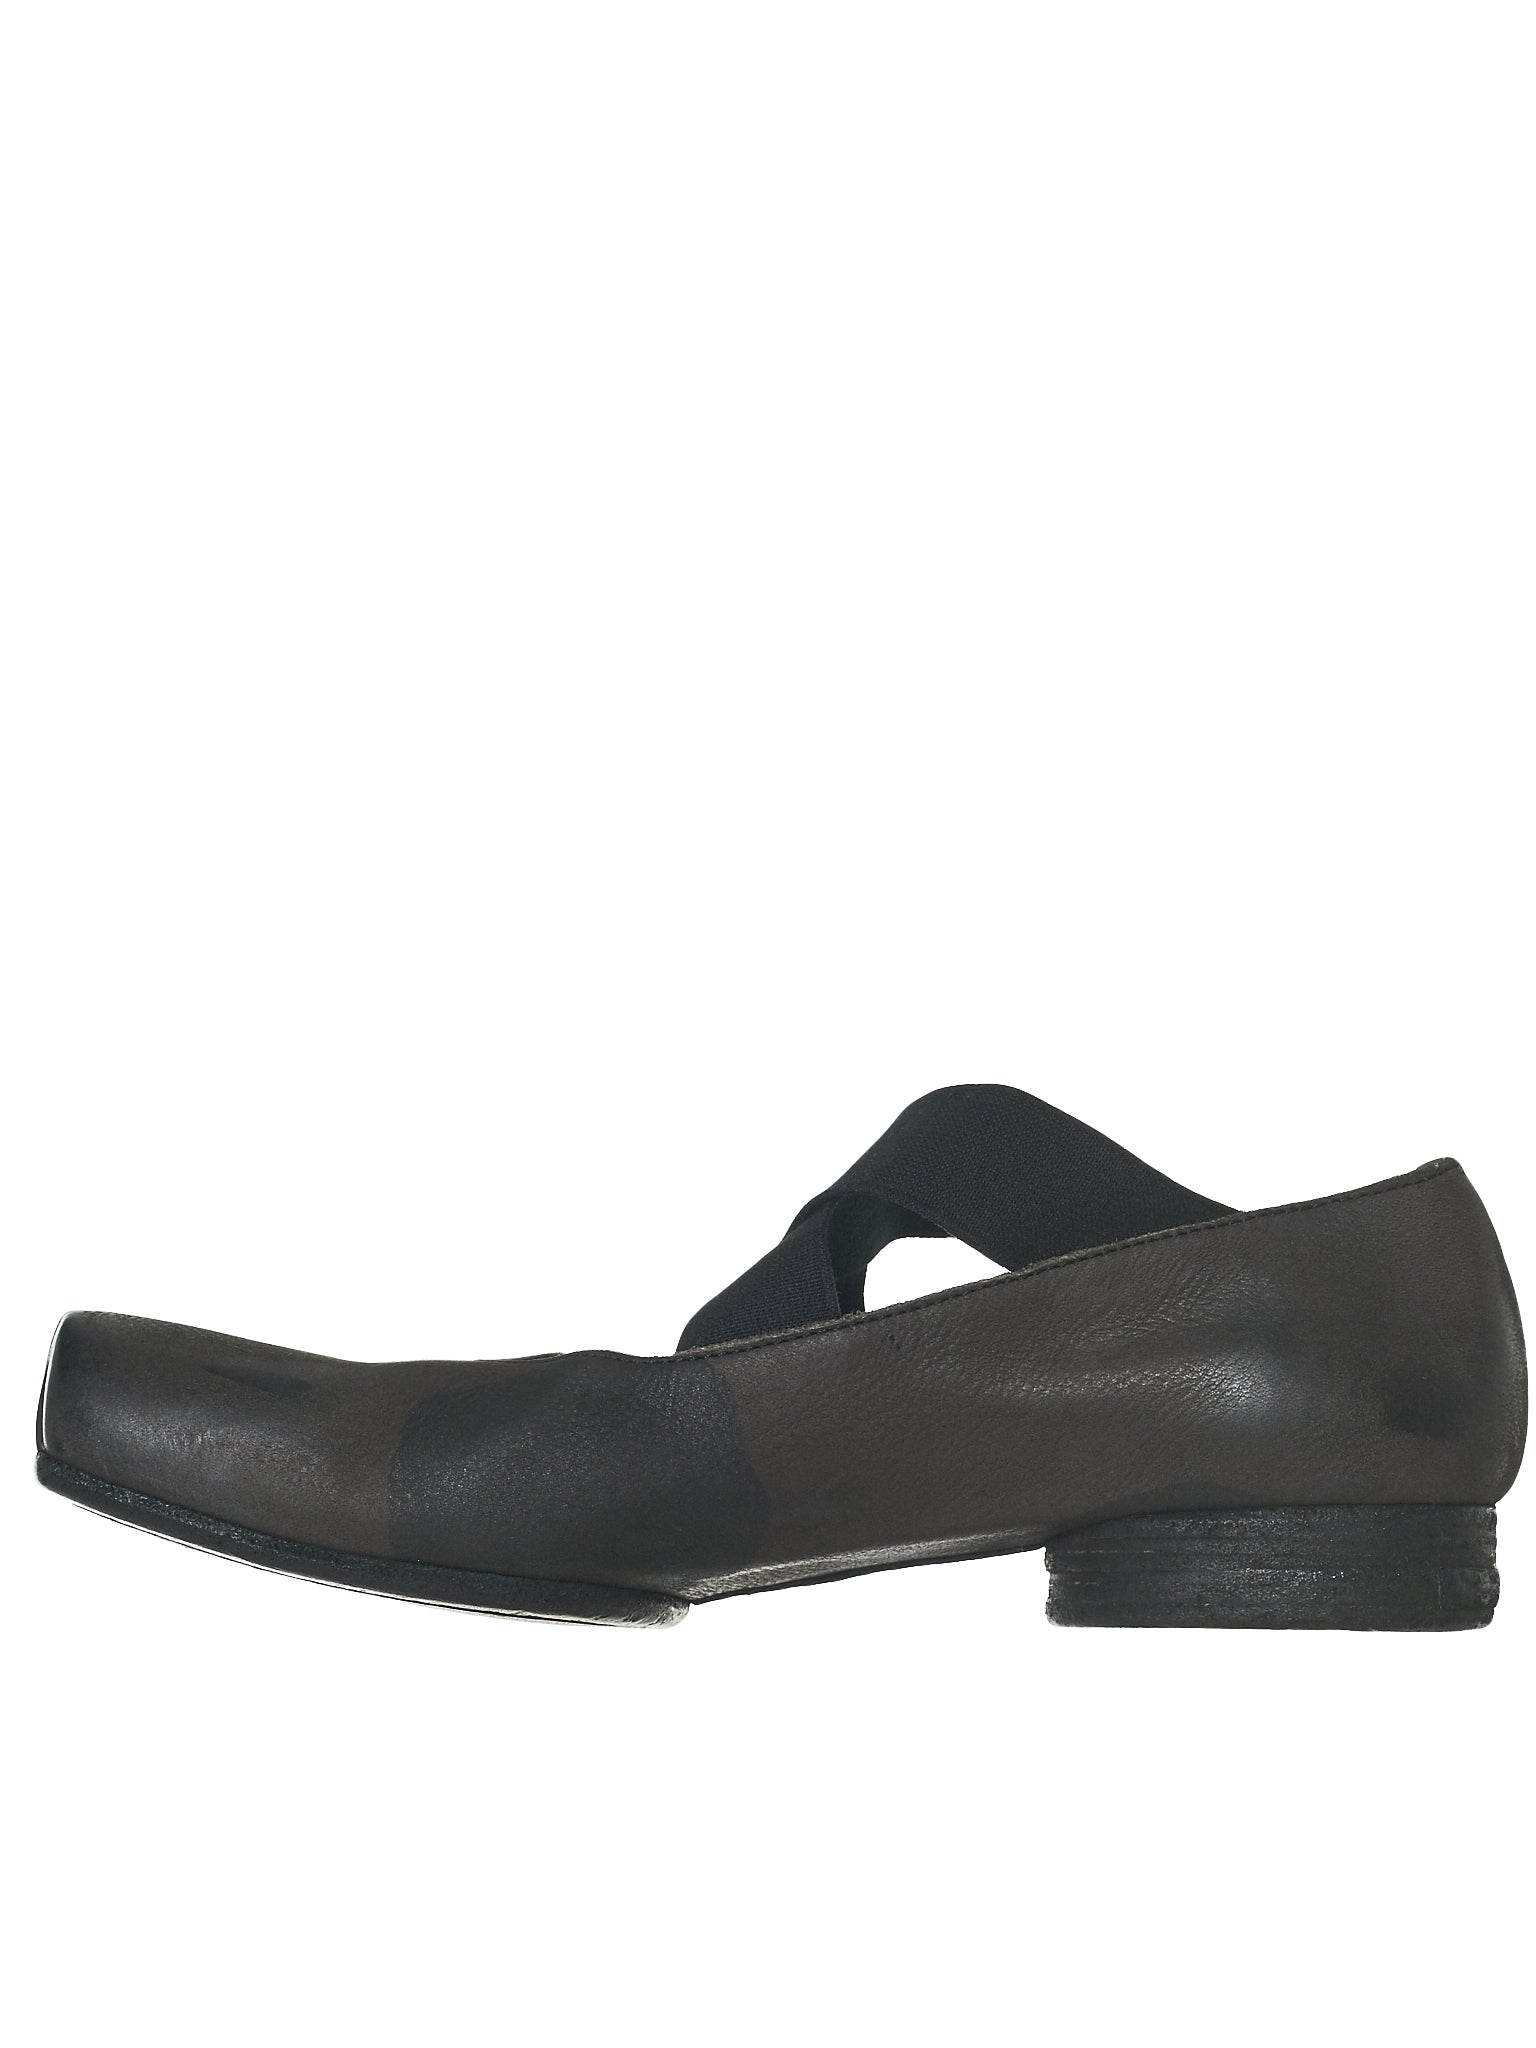 Uma Wang Ballet Shoes - Hlorenzo Back